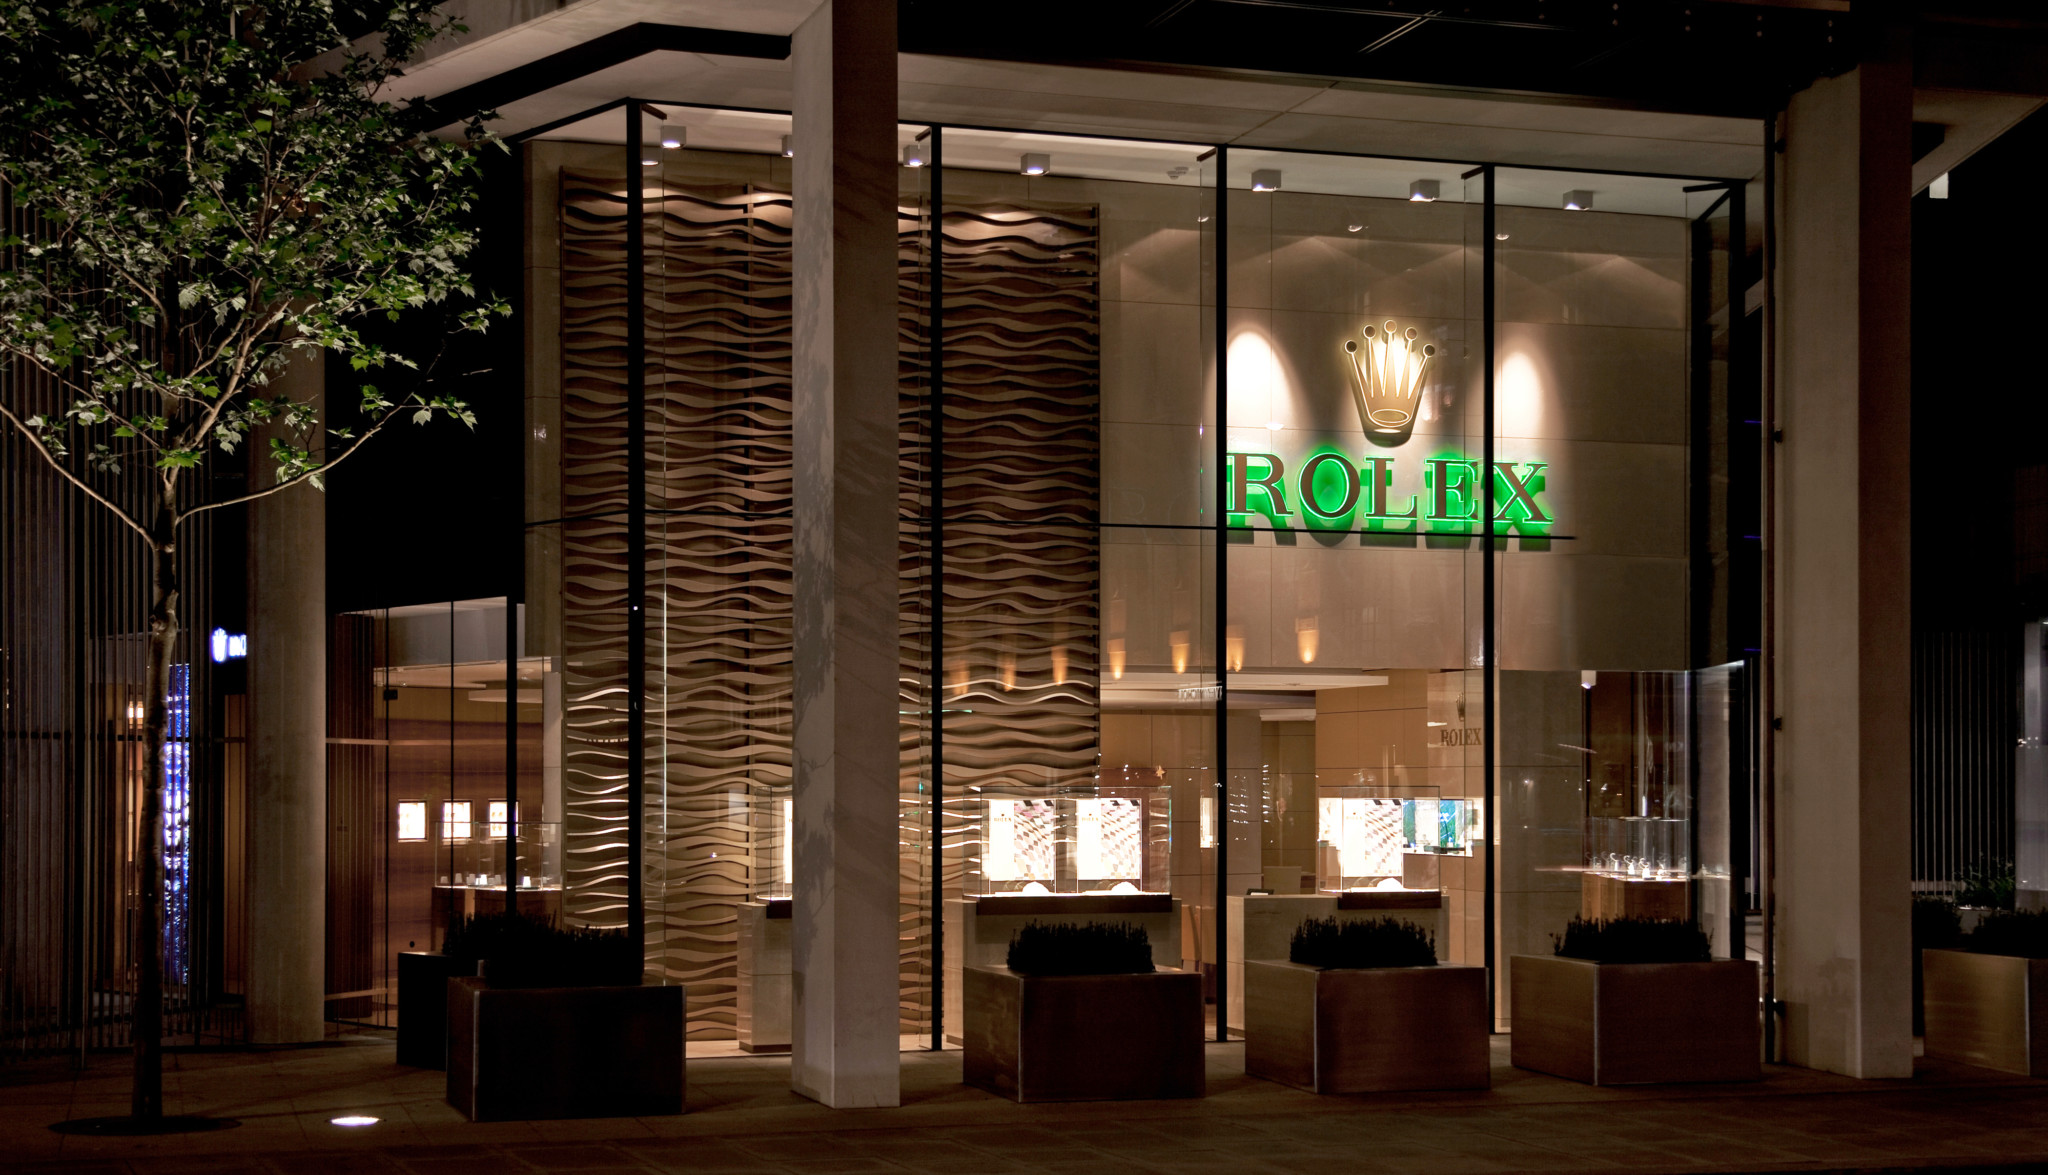 The Rolex boutique at One Hyde Park in London's Knightsbridge, is the biggest Rolex showroom in the UK.